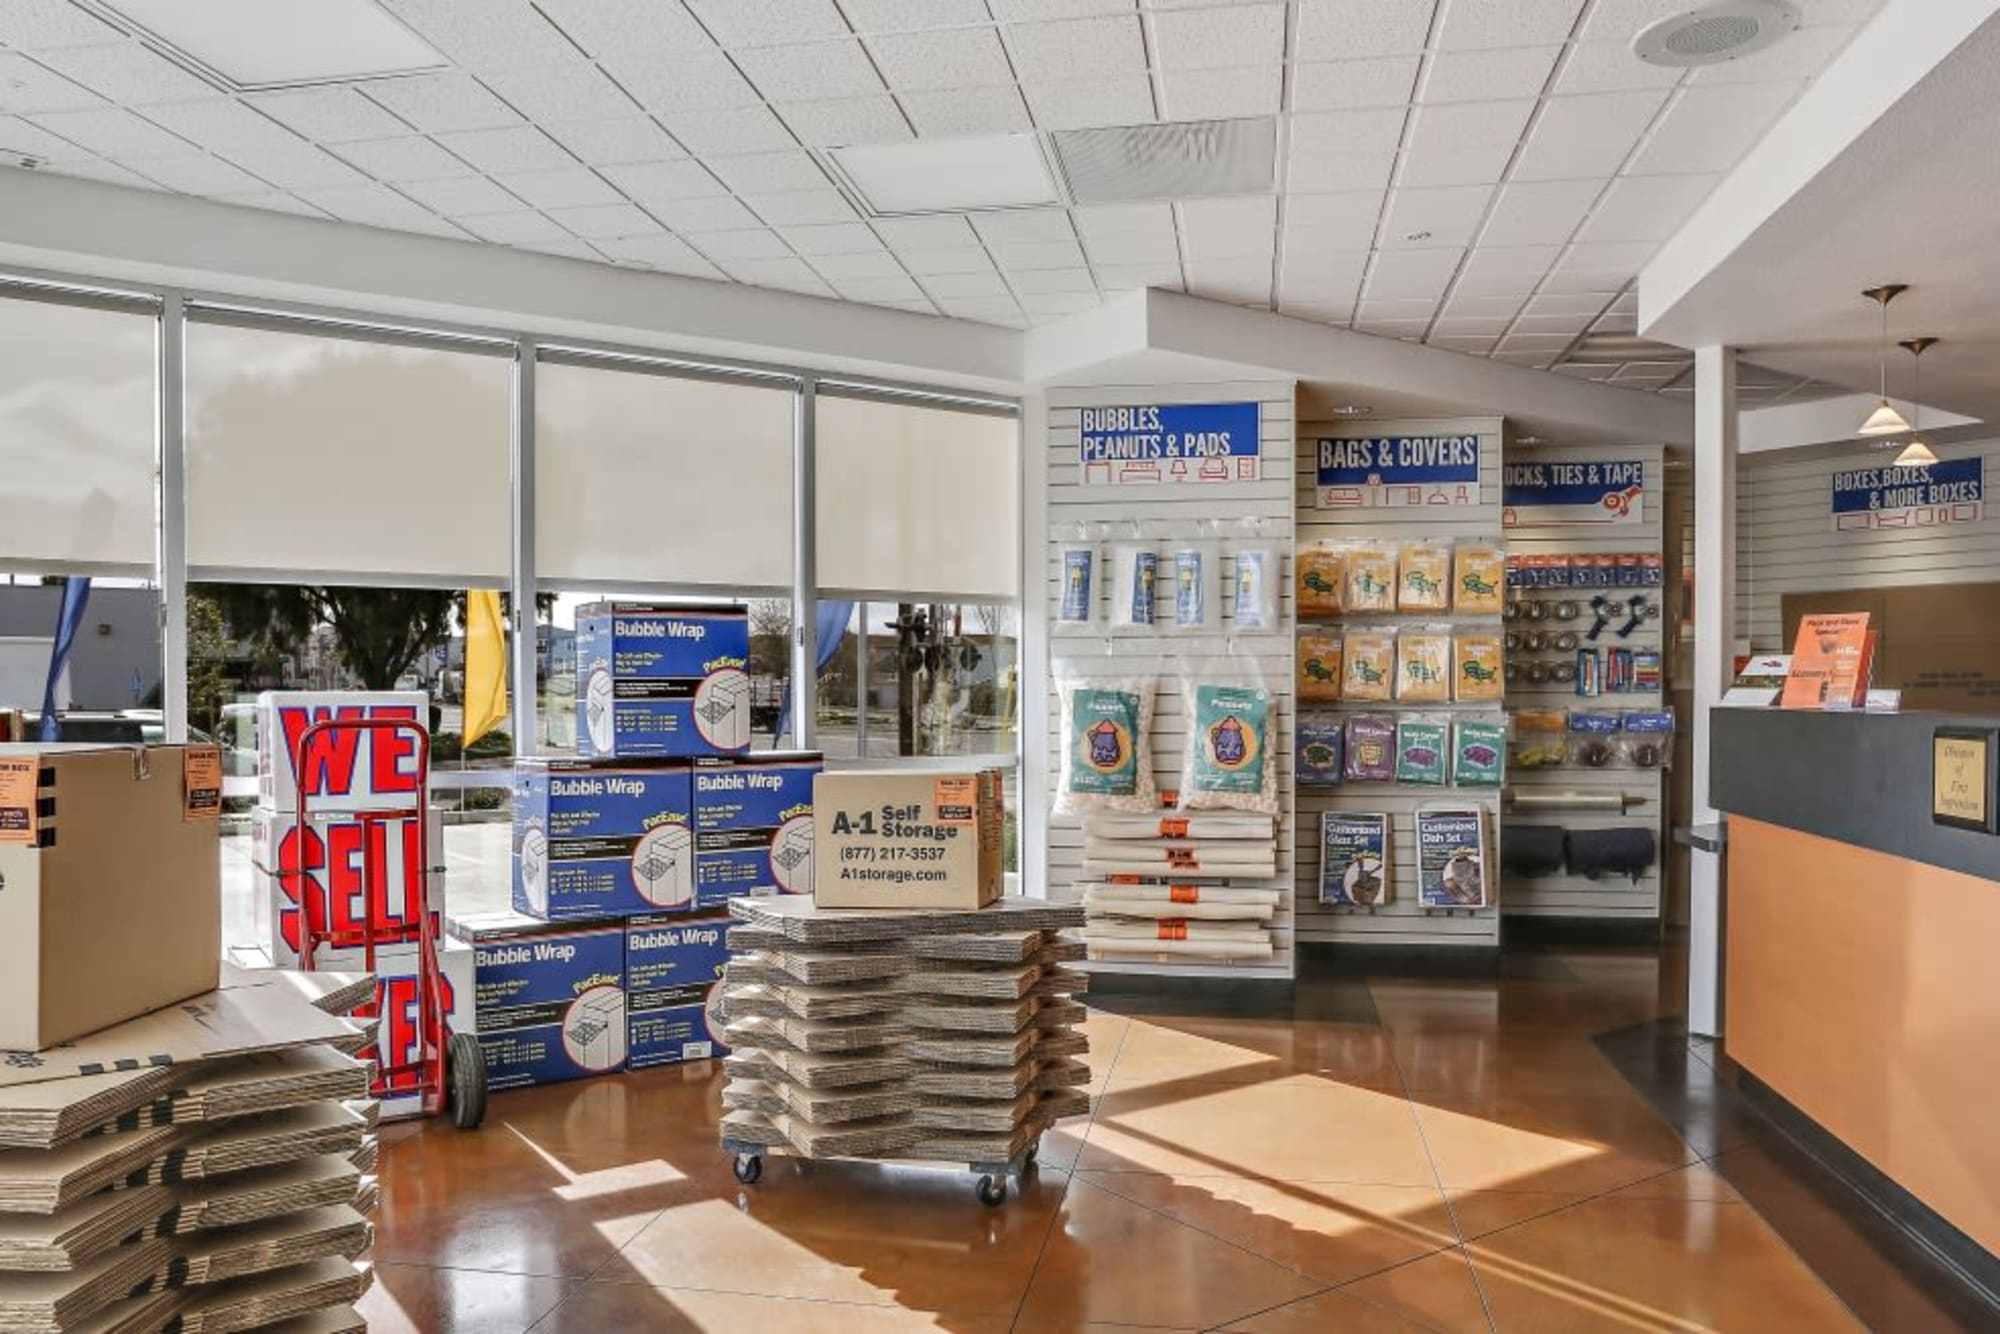 Packing and moving supplies in the office of A-1 Self Storage